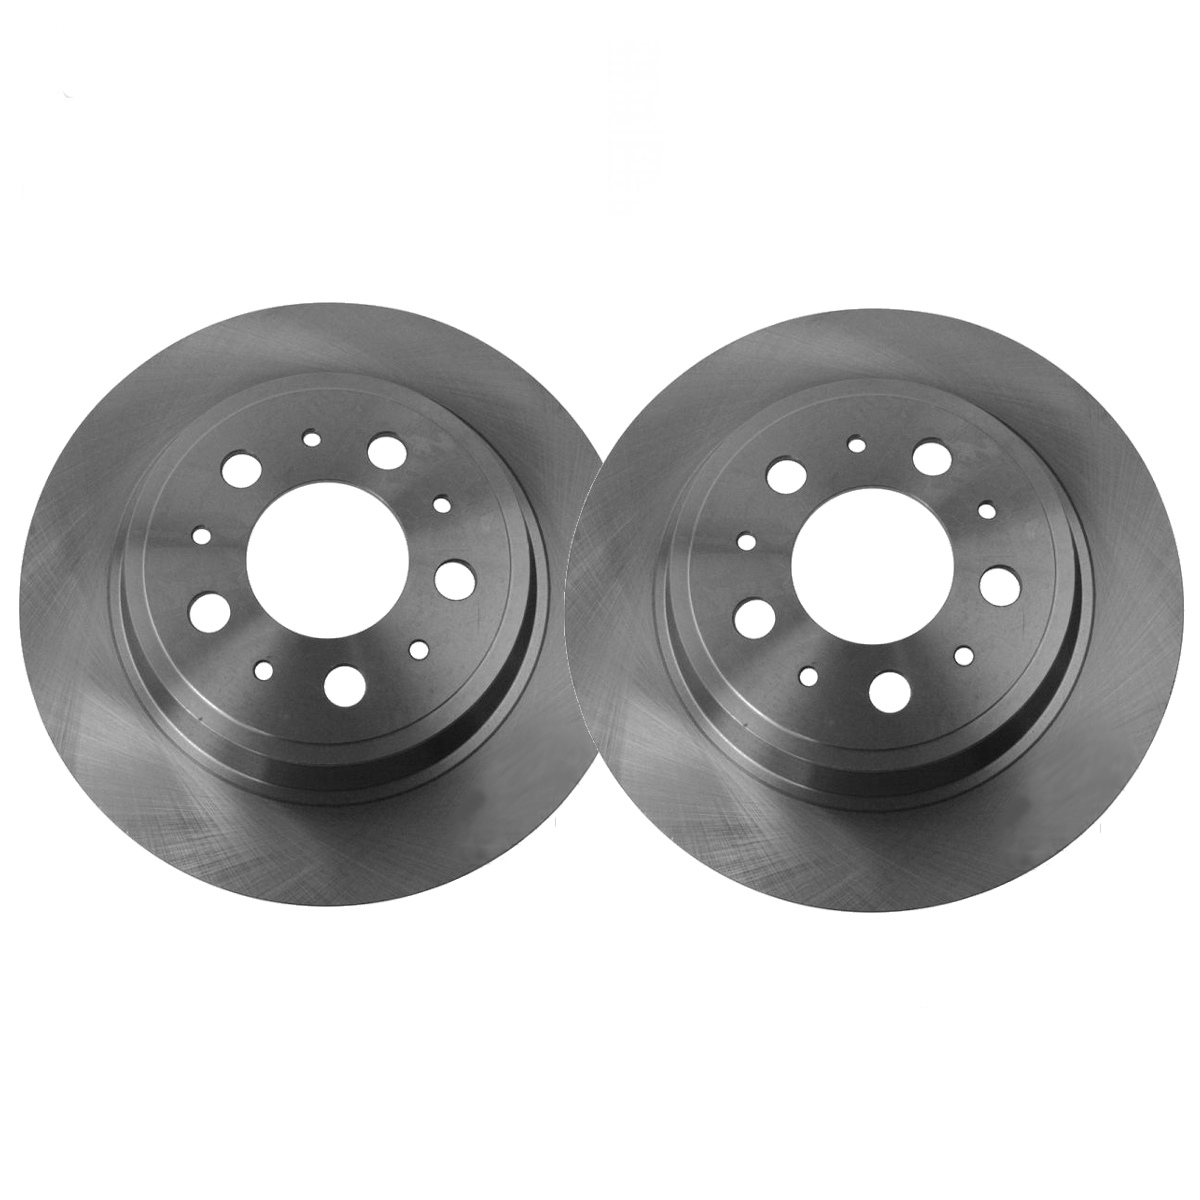 2007 2008 2009 Volvo S60 OE Replacement Rotors w//Ceramic Pads F See Desc.